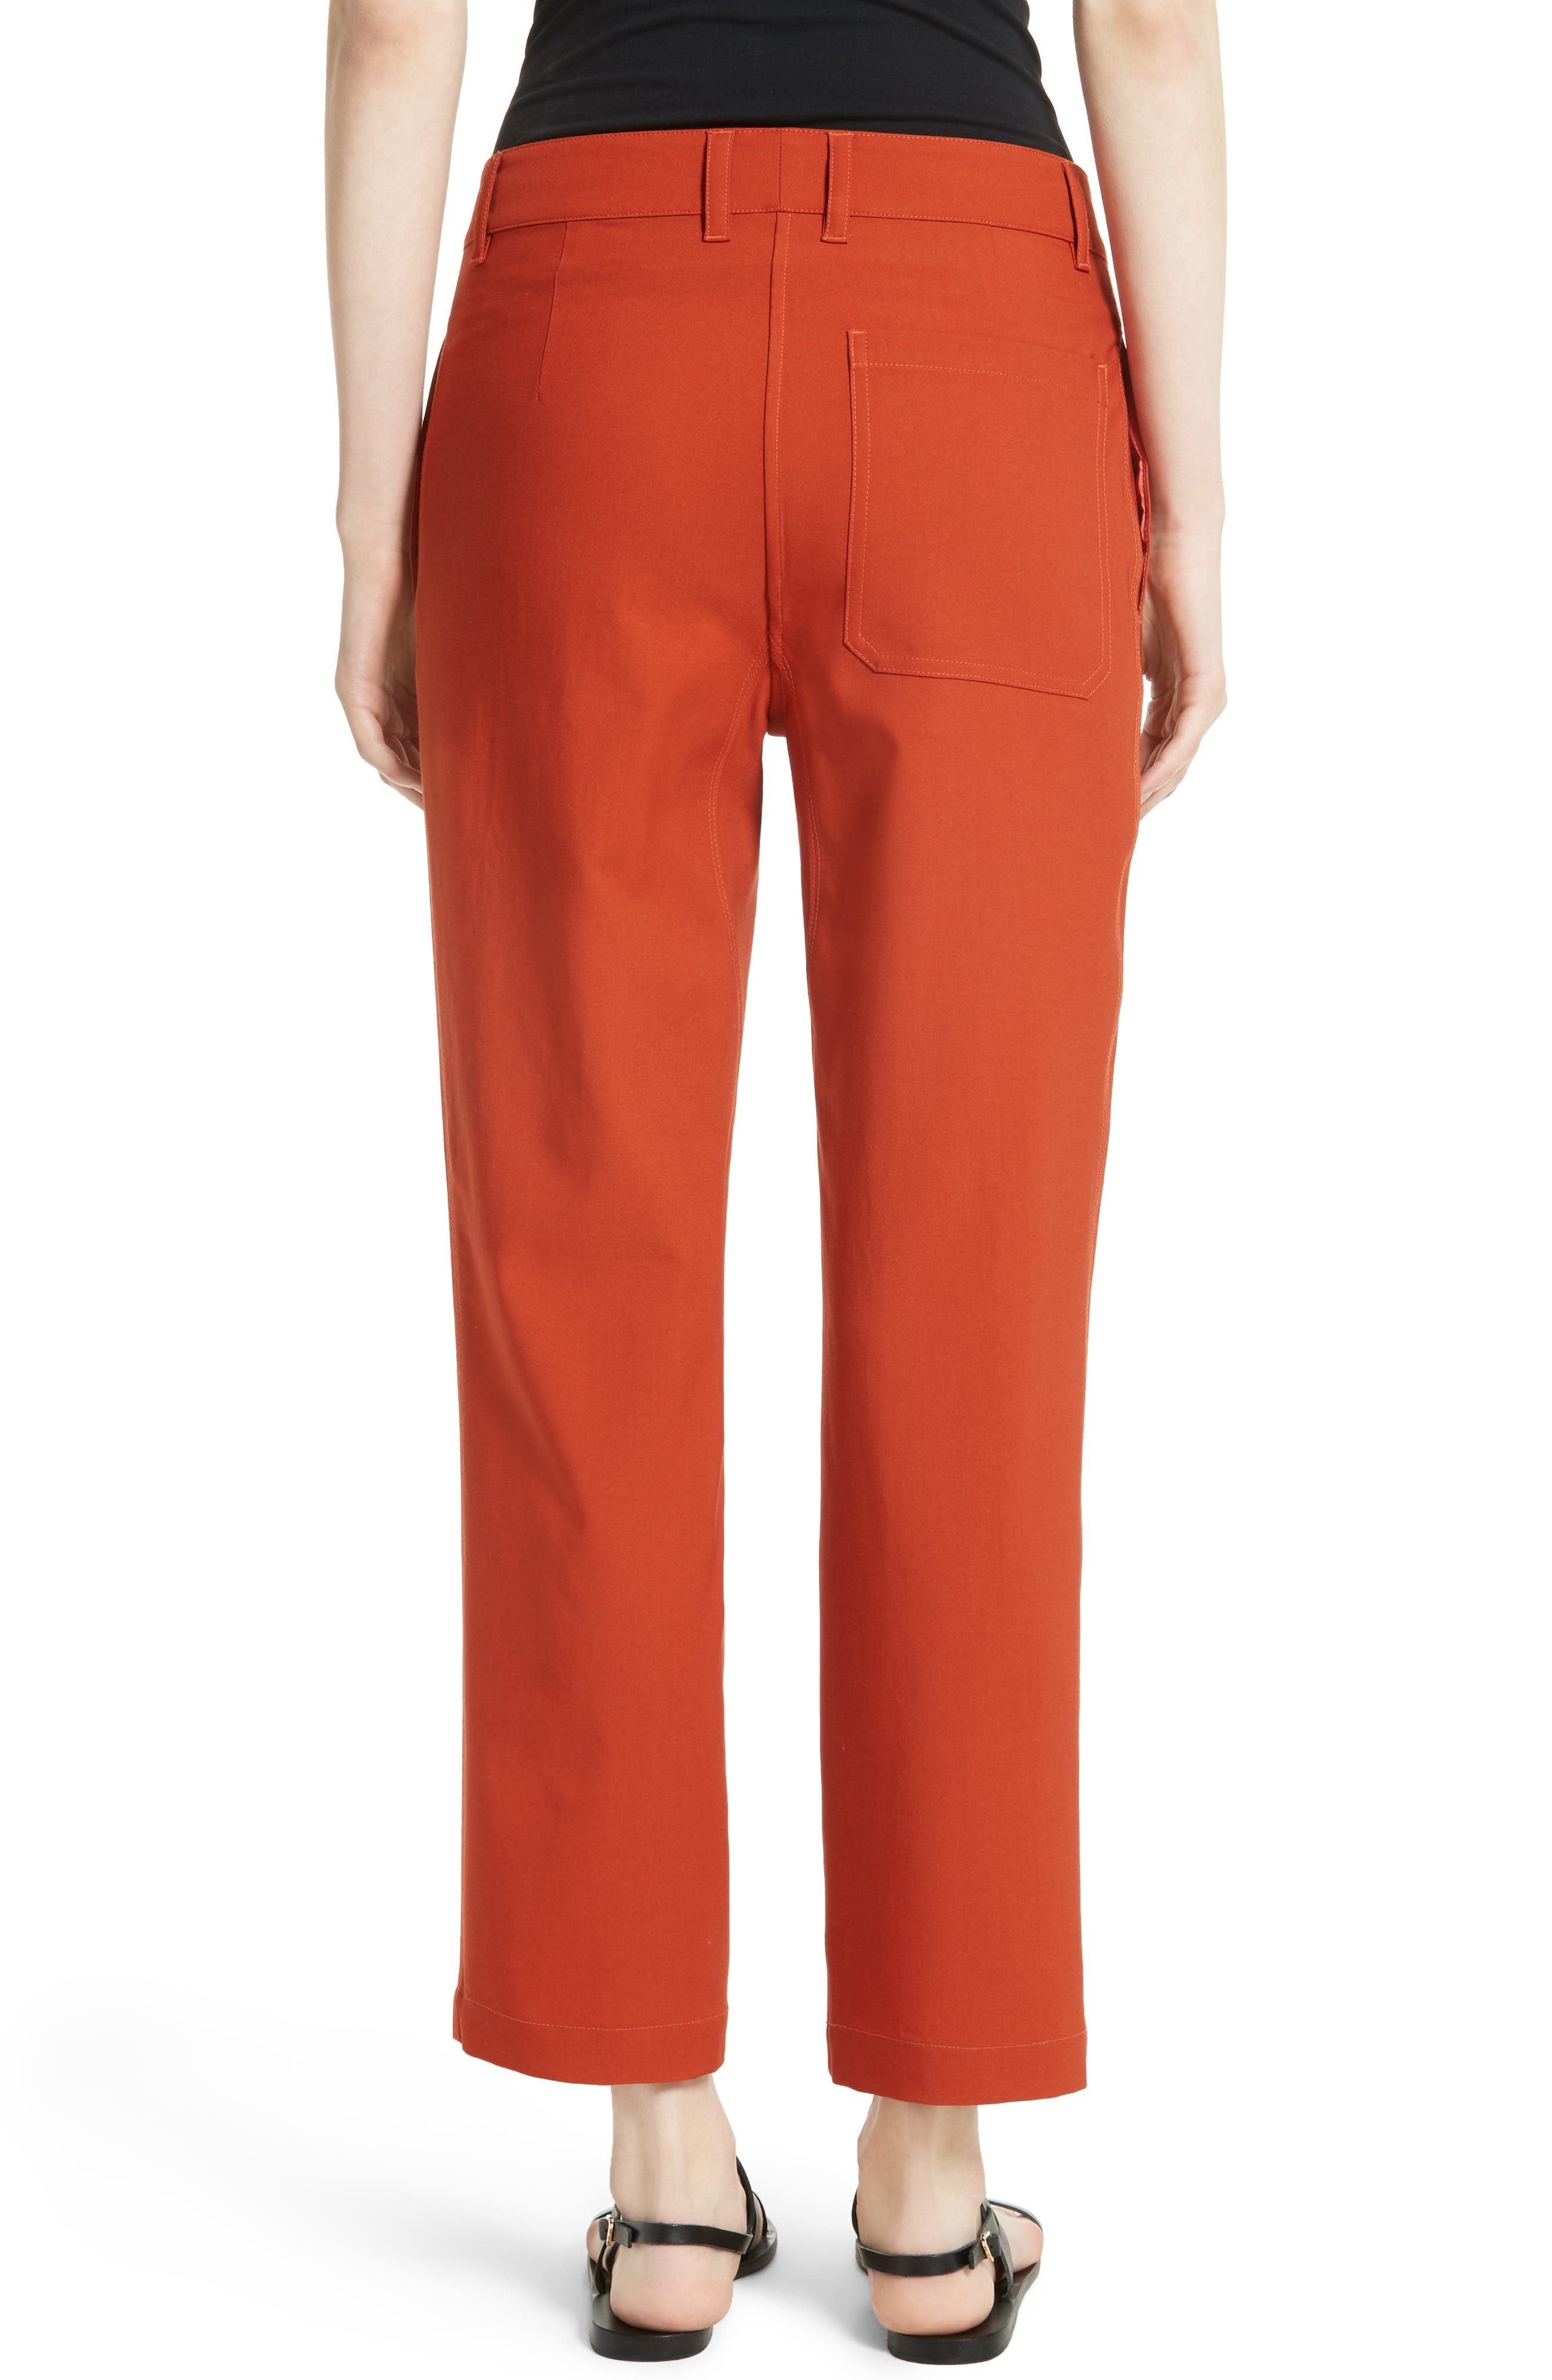 Thorelle B New Stretch Wool Pants,                             Alternate thumbnail 2, color,                             Dark Marmalade